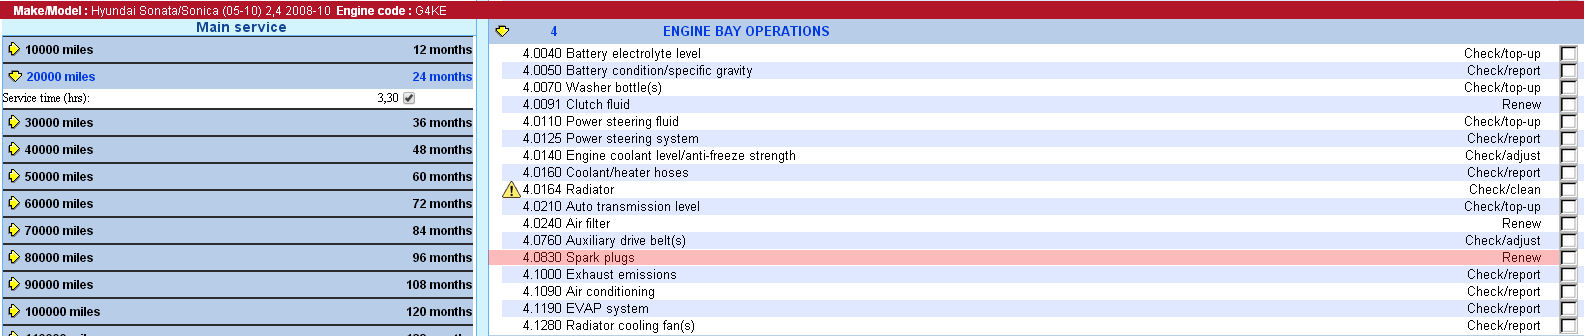 Engine Malfunction Light codes P0106 and P0304 | Hyundai Forums